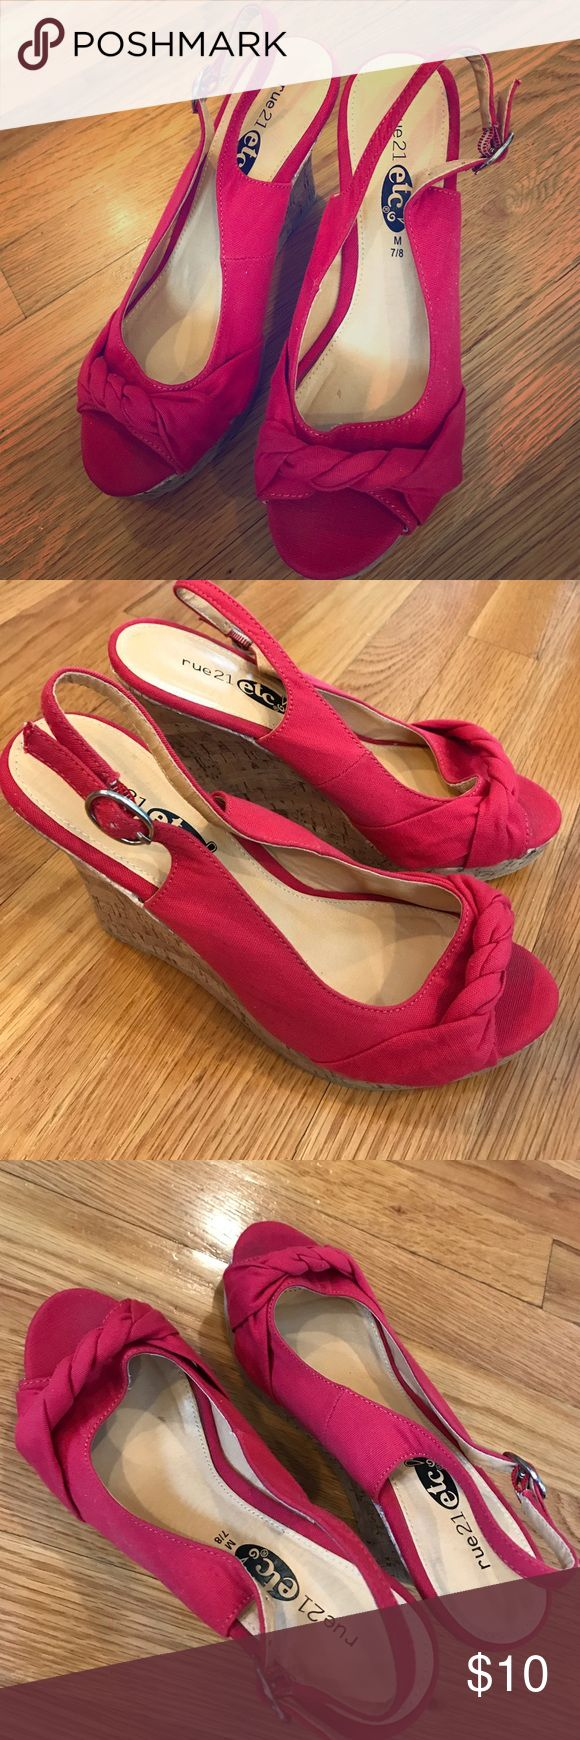 Hot pink braided wedges! Never worn Rue21 wedges, 4 inch heel, cork wedge, hot pink toe and buckle strap, size M fits a 7/8 Rue 21 Shoes Wedges